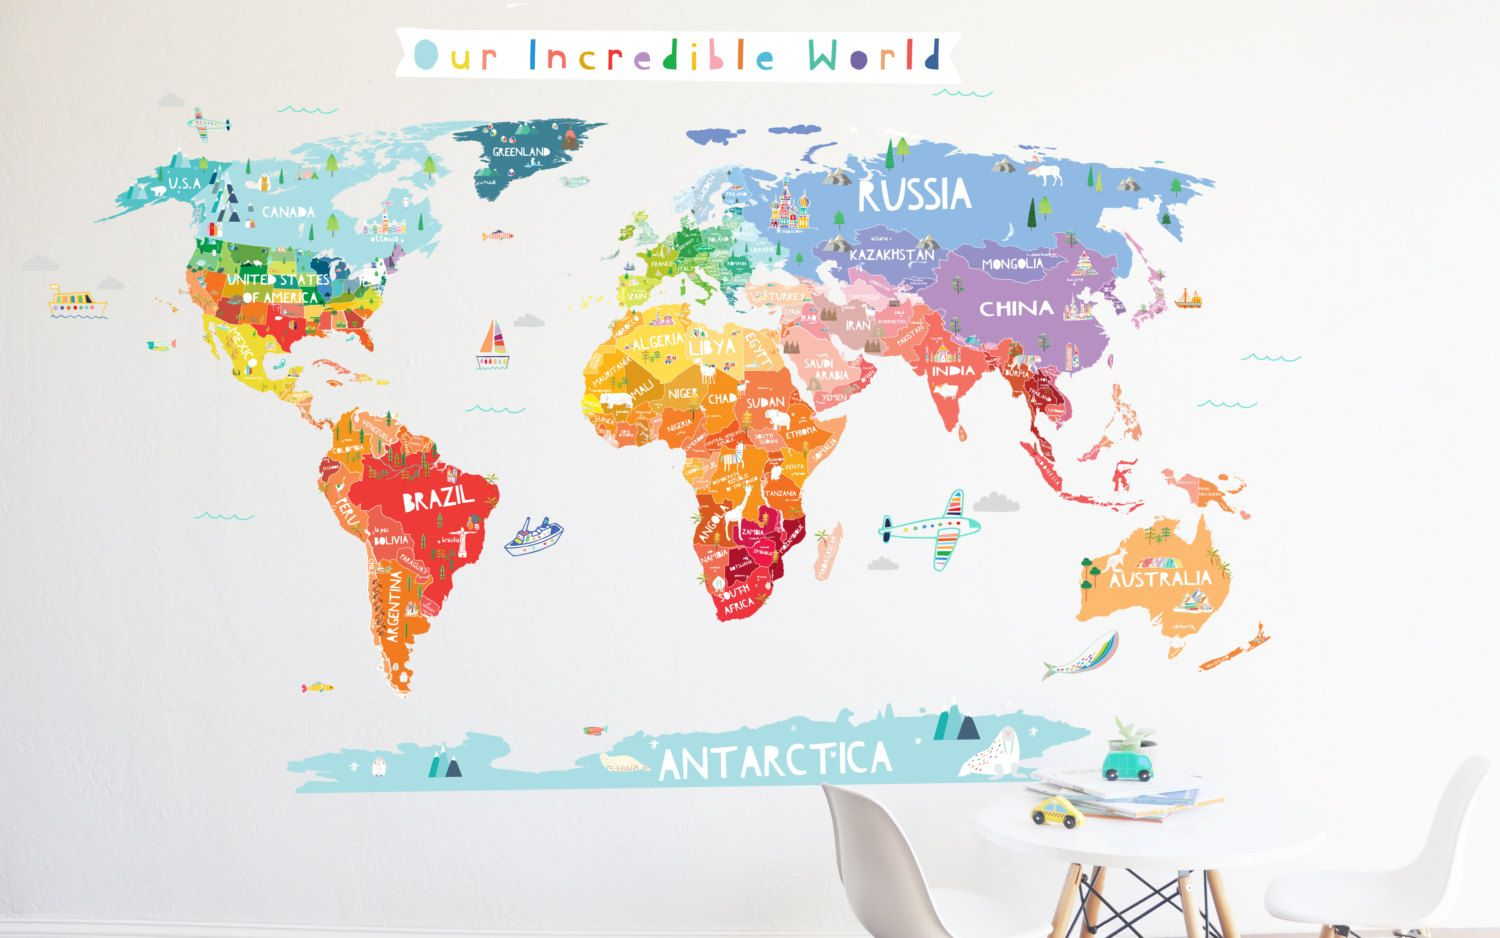 World map wall decal our incredible world world map wall decal world map wall decal our incredible world world map wall decal with personalization stickers wall sticker room decor world map gumiabroncs Choice Image